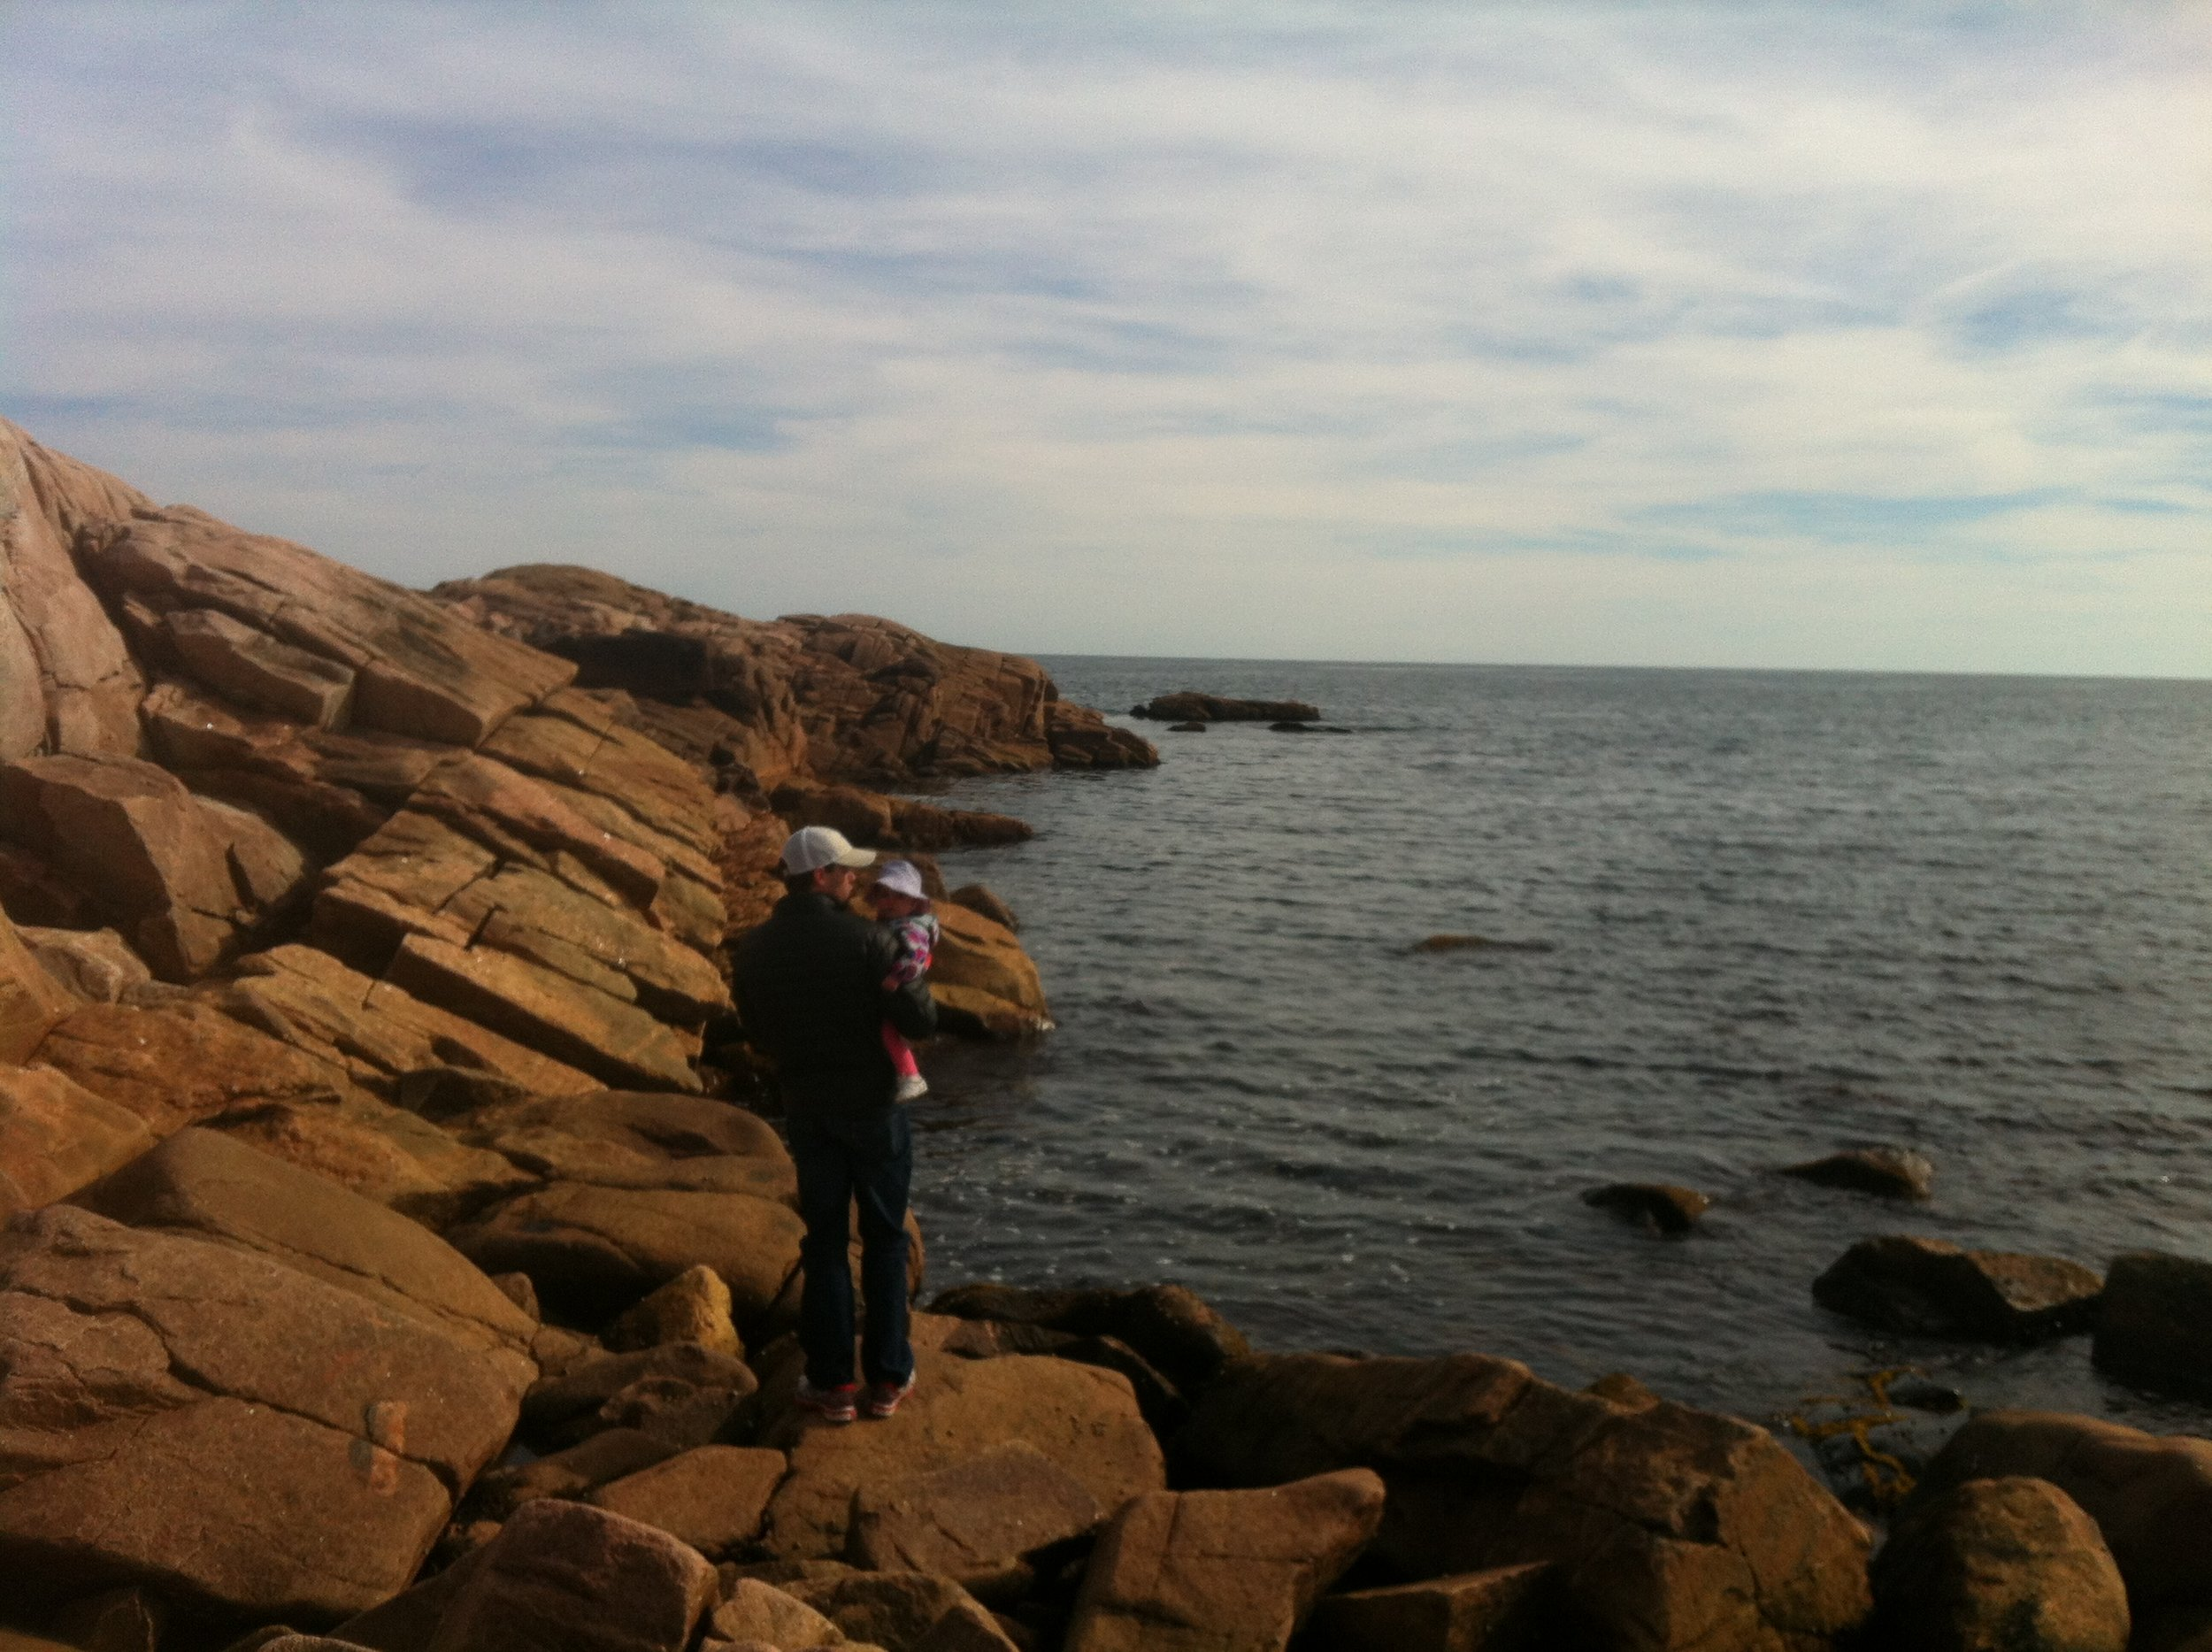 Just a dad and his gal, fearless on the cliffs of Novia Scotia.